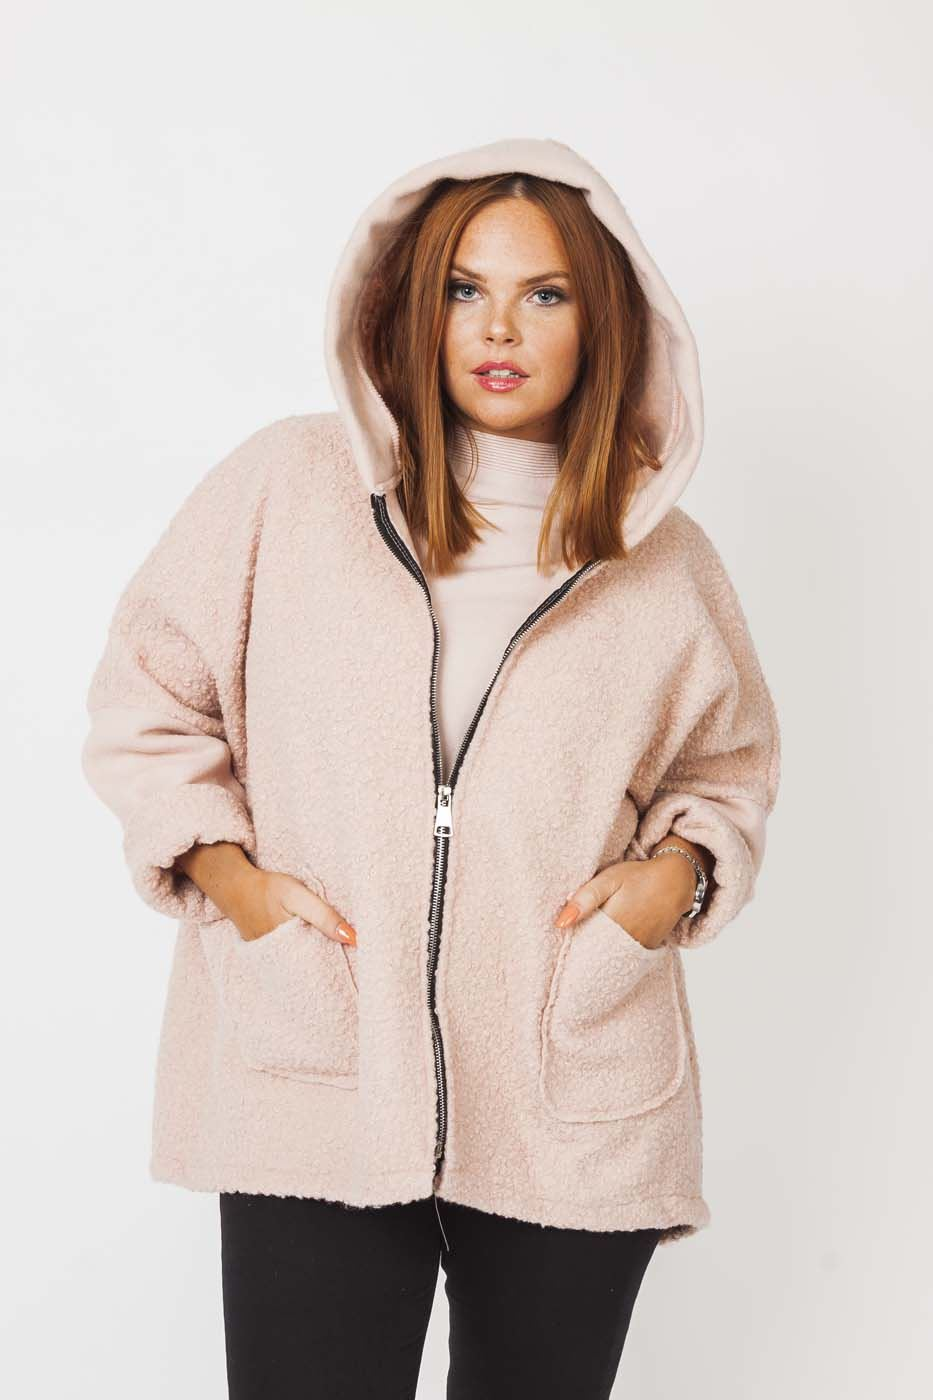 Wholesale Textured Wool Hooded Contrast Jacket